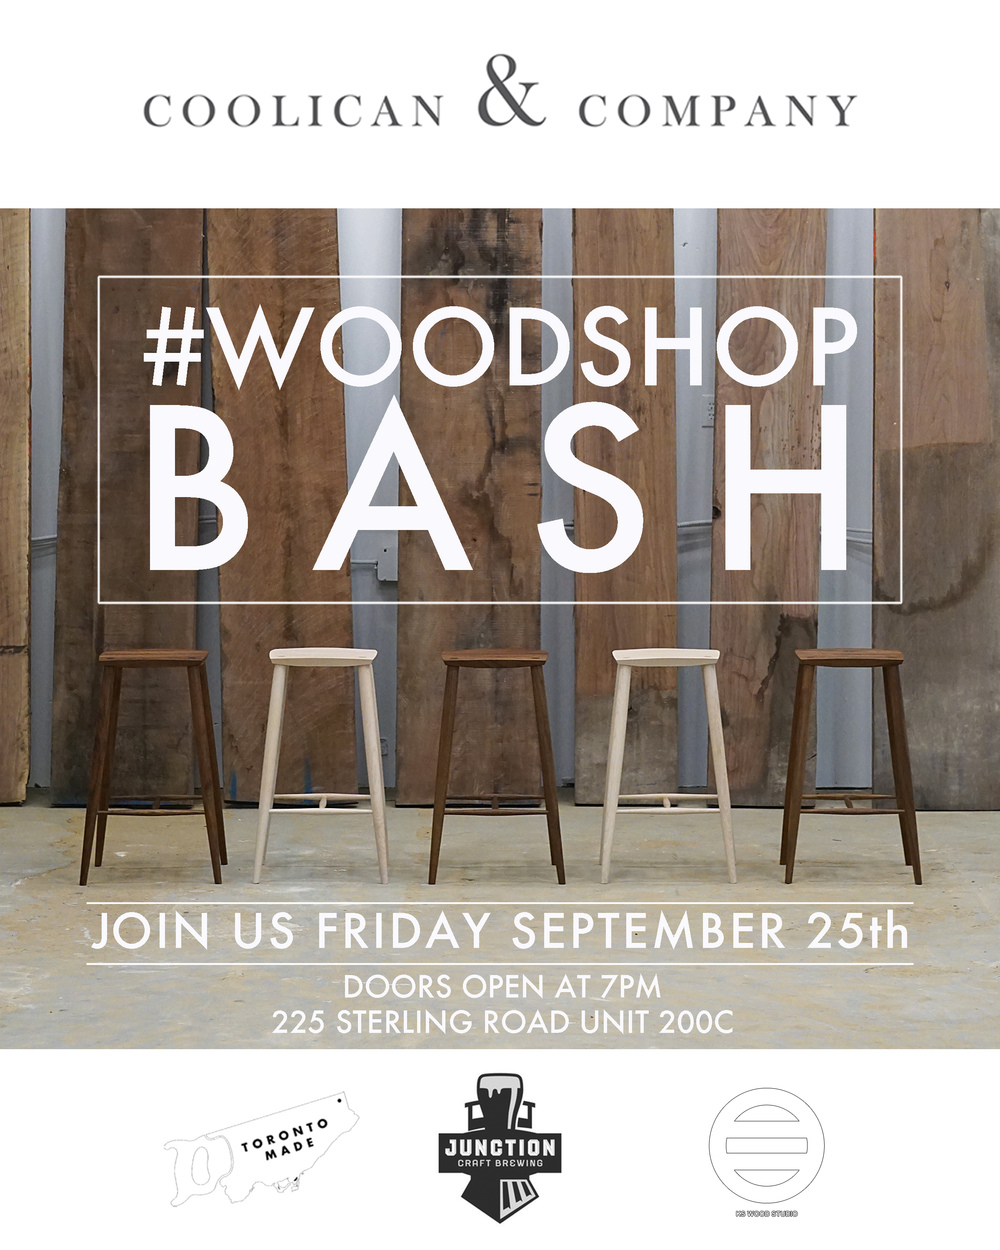 Come celebrate the opening of our new studio showroom.    When:  Friday September 25th 7PM till late   Where:  225 Sterling Road Unit 200C   Why : We've got a big stack of records, and a great new space. So bring your friends for a night at the woodshop. Oh, did I mention our friends over at  Junction Craft Brewing  will be bringing the beer?   Follow us on  instagram  and #woodshopbash for a chance to win some goods!